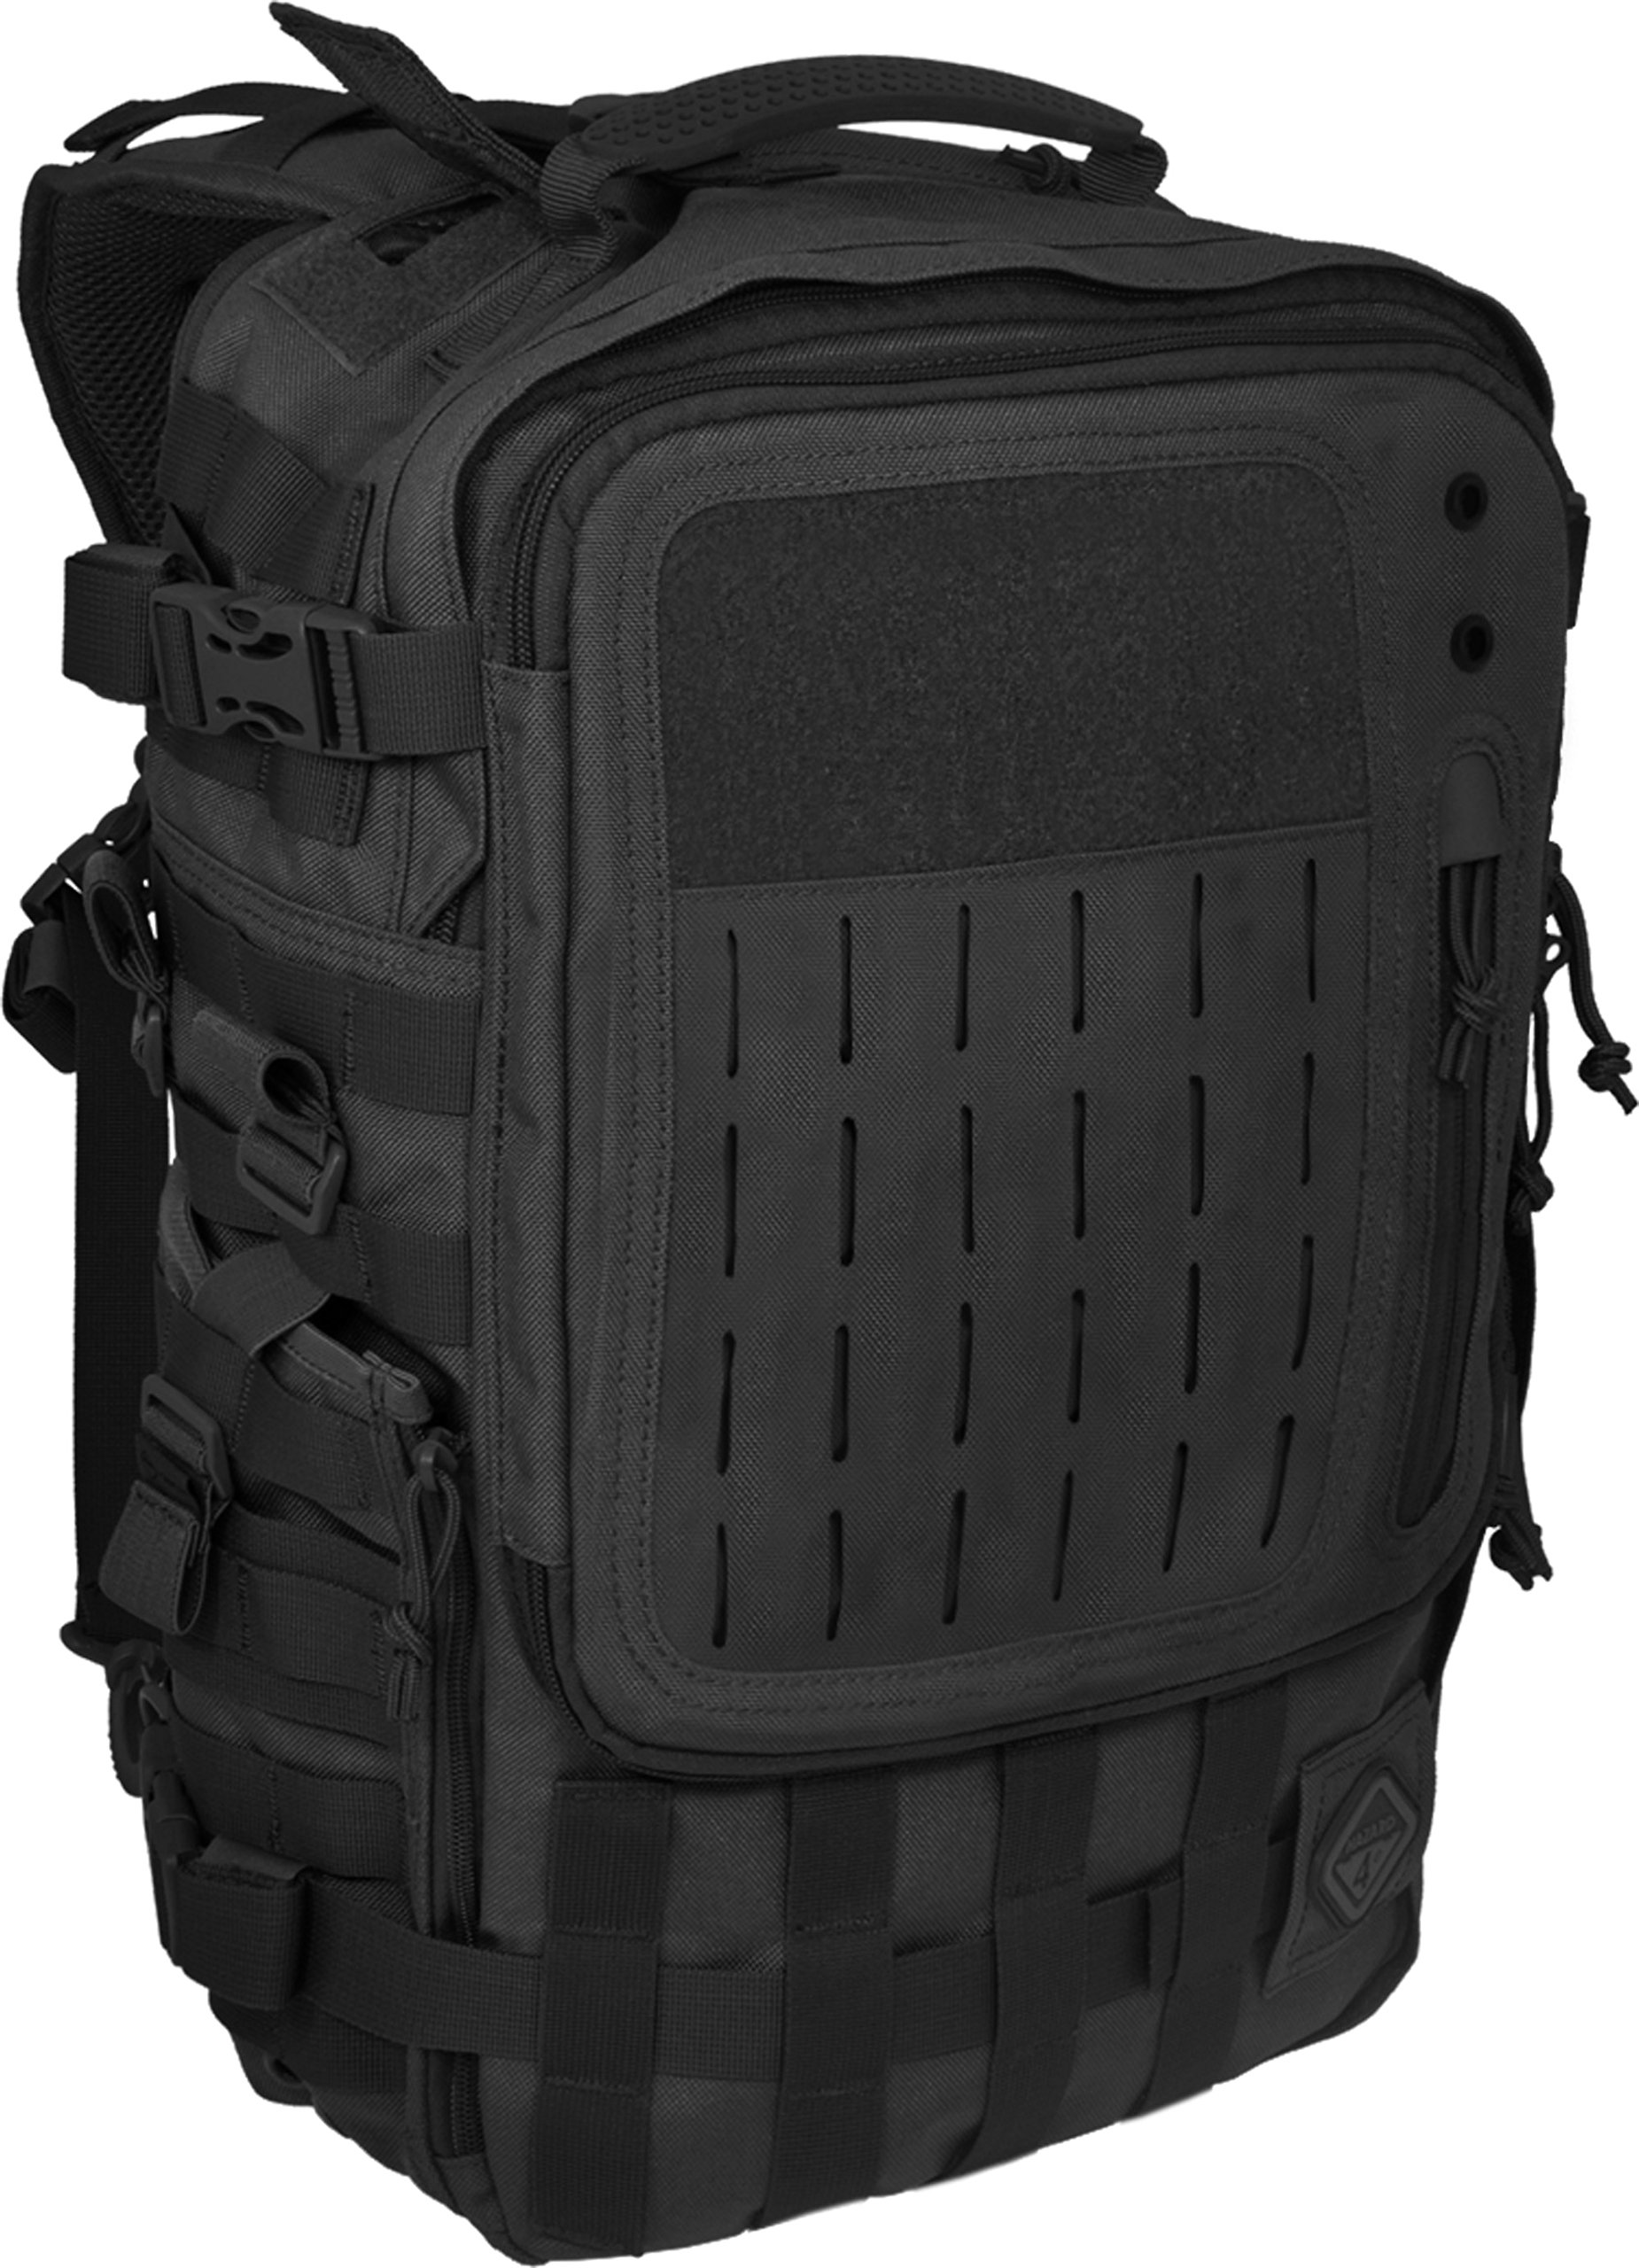 Sidewinder(TM) Full-Sized Laptop Sling Pack by Hazard 4(R) - Black by HAZARD 4